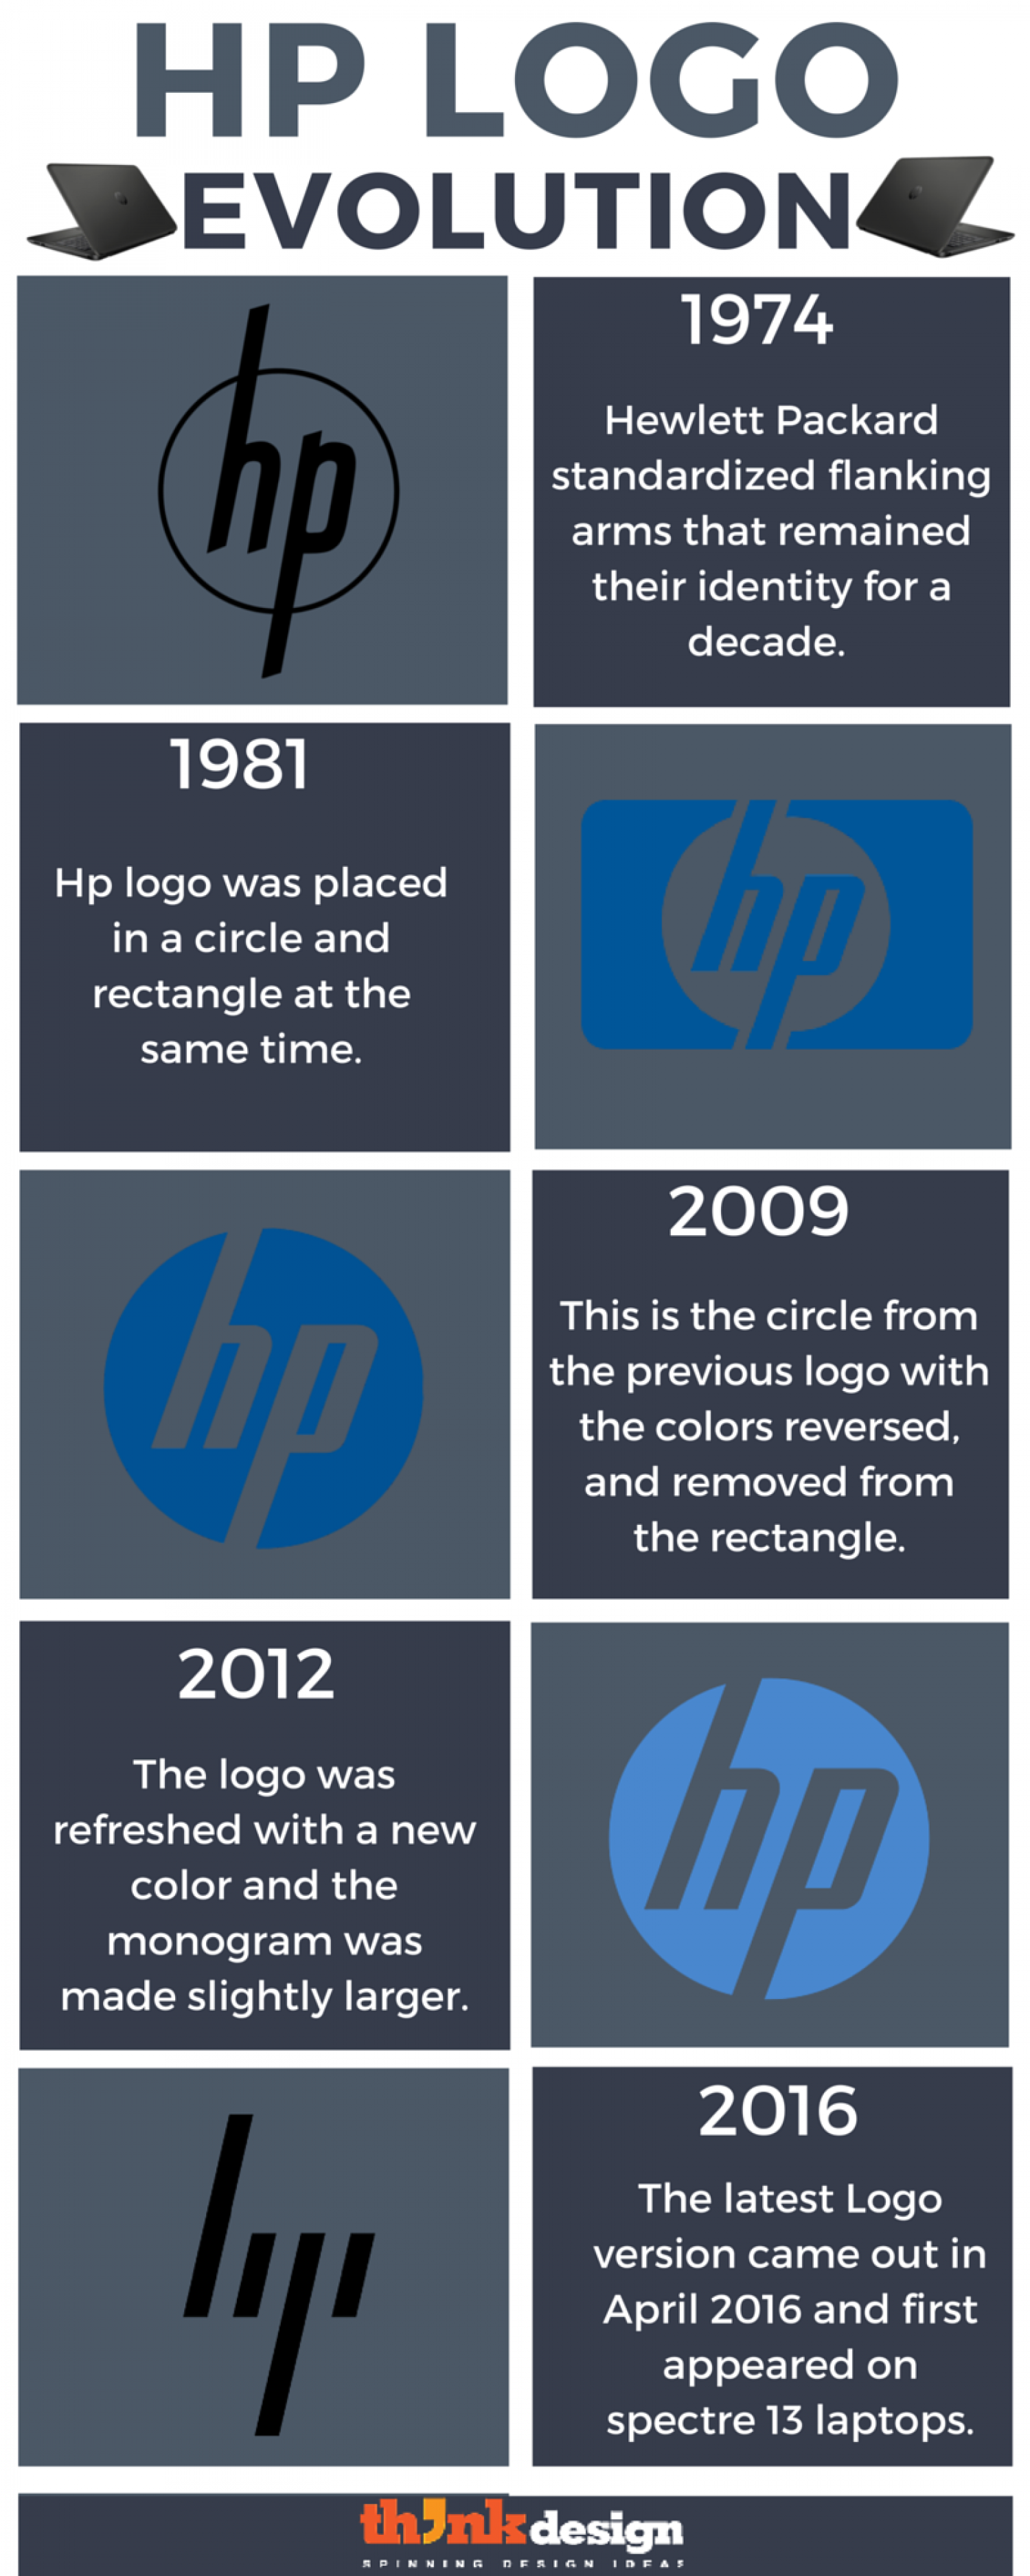 hp logo evolution the journey of an iconic logo visually